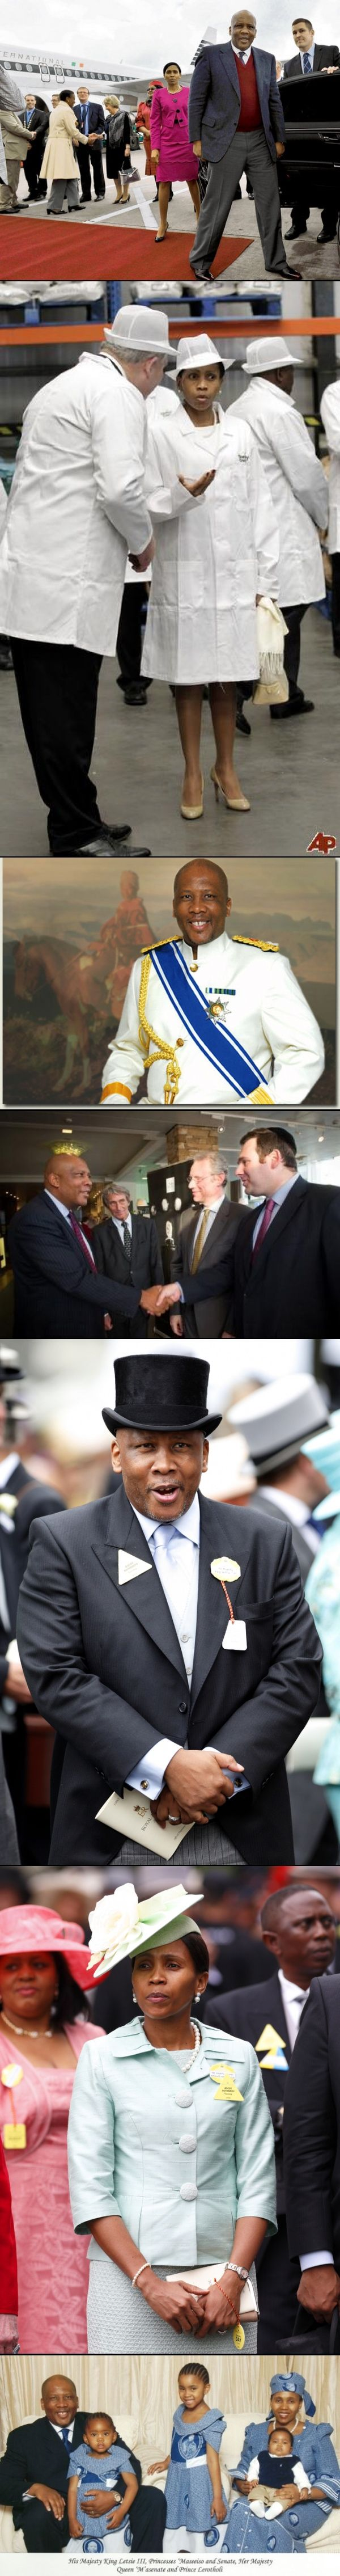 His Majesty King Letsie III of Lesotho arriving for a 3 day official visit to Ireland. During his visit, the King, who is accompanied by Her Majesty Queen Masenate Mohato Seesion, meet with President Higgins, members of the Government, NGOs and business leaders. May 2012